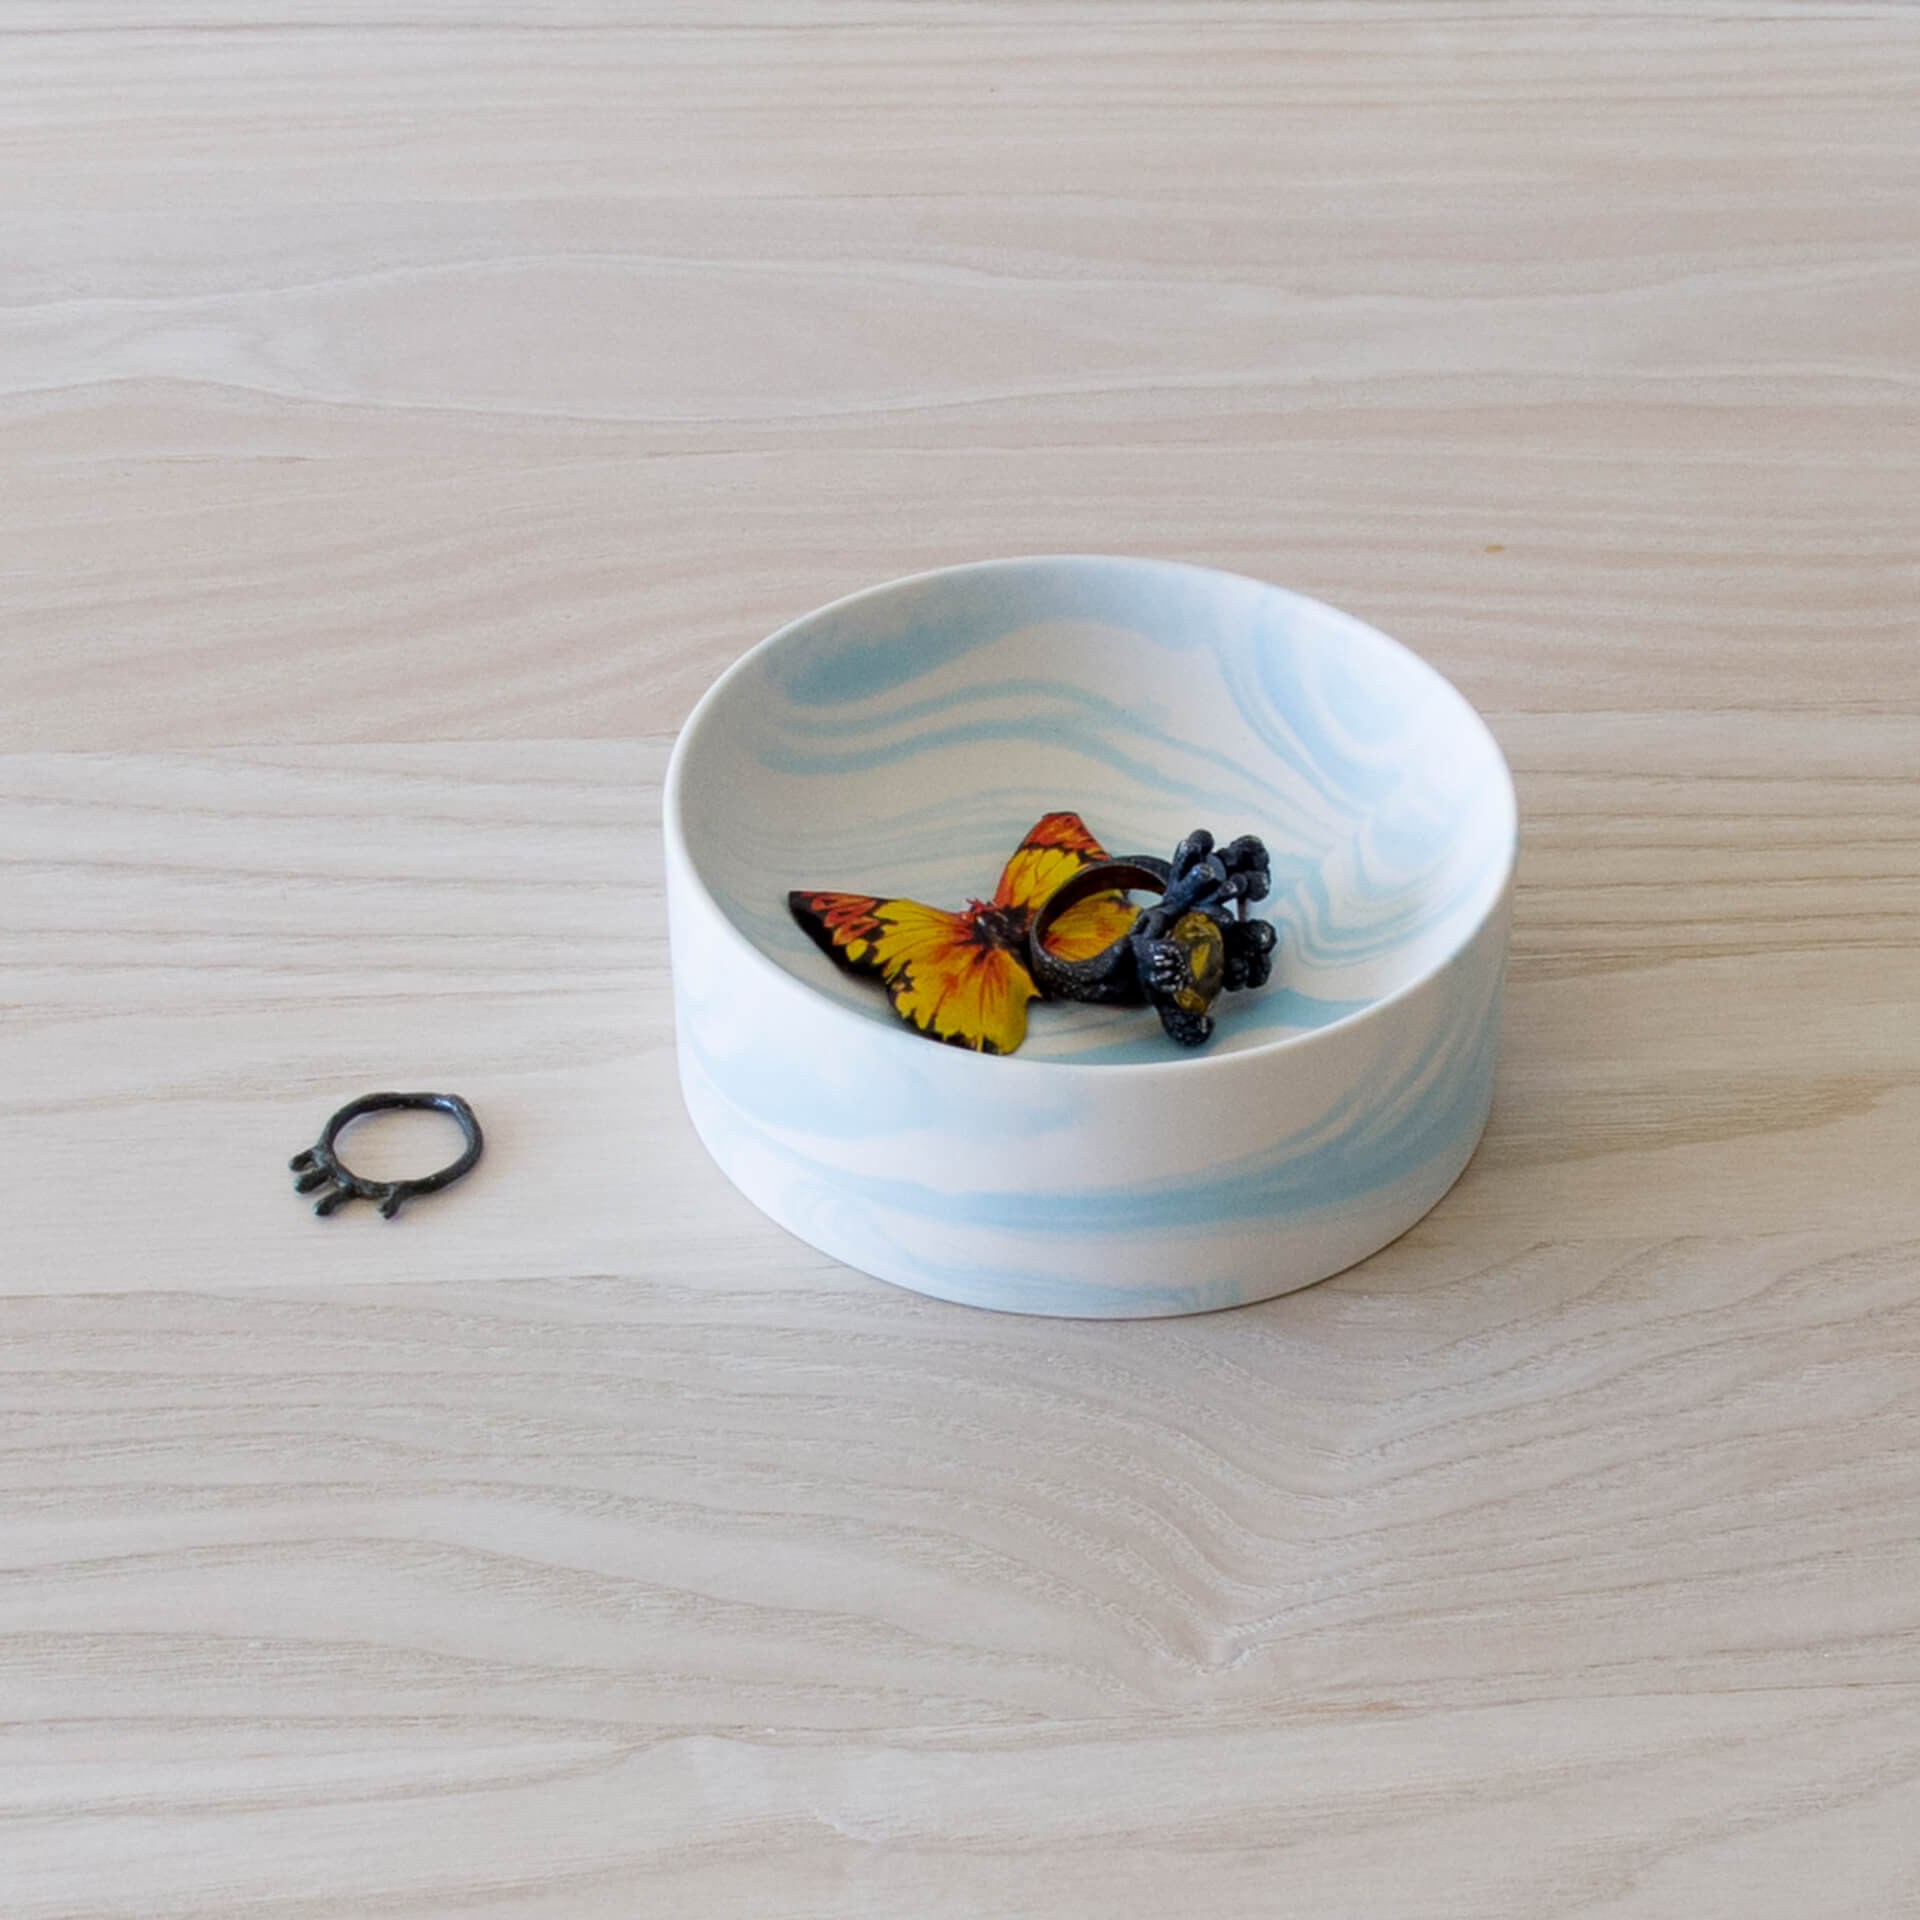 Poured Bowl – Small – White with Light Blue – Angled View – Troels_Flensted – Square – 300dpi